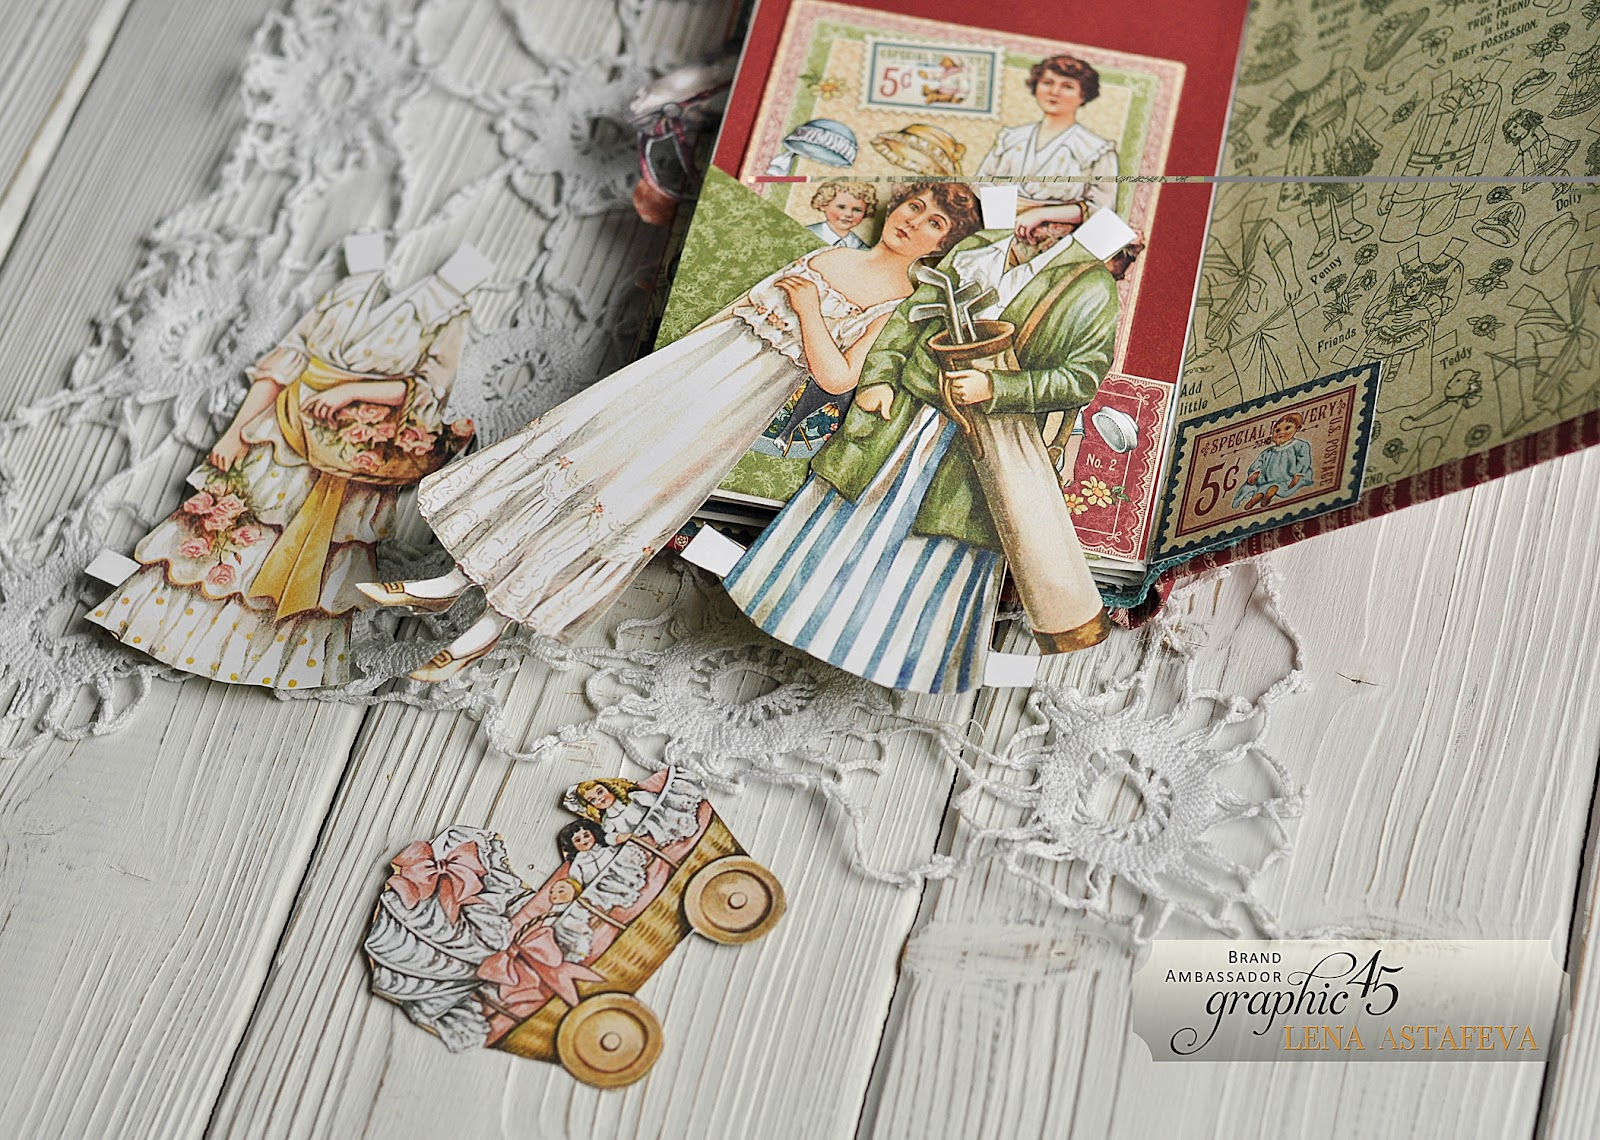 My Family Mini Album Featuring Penny's Paper Doll Family Collection